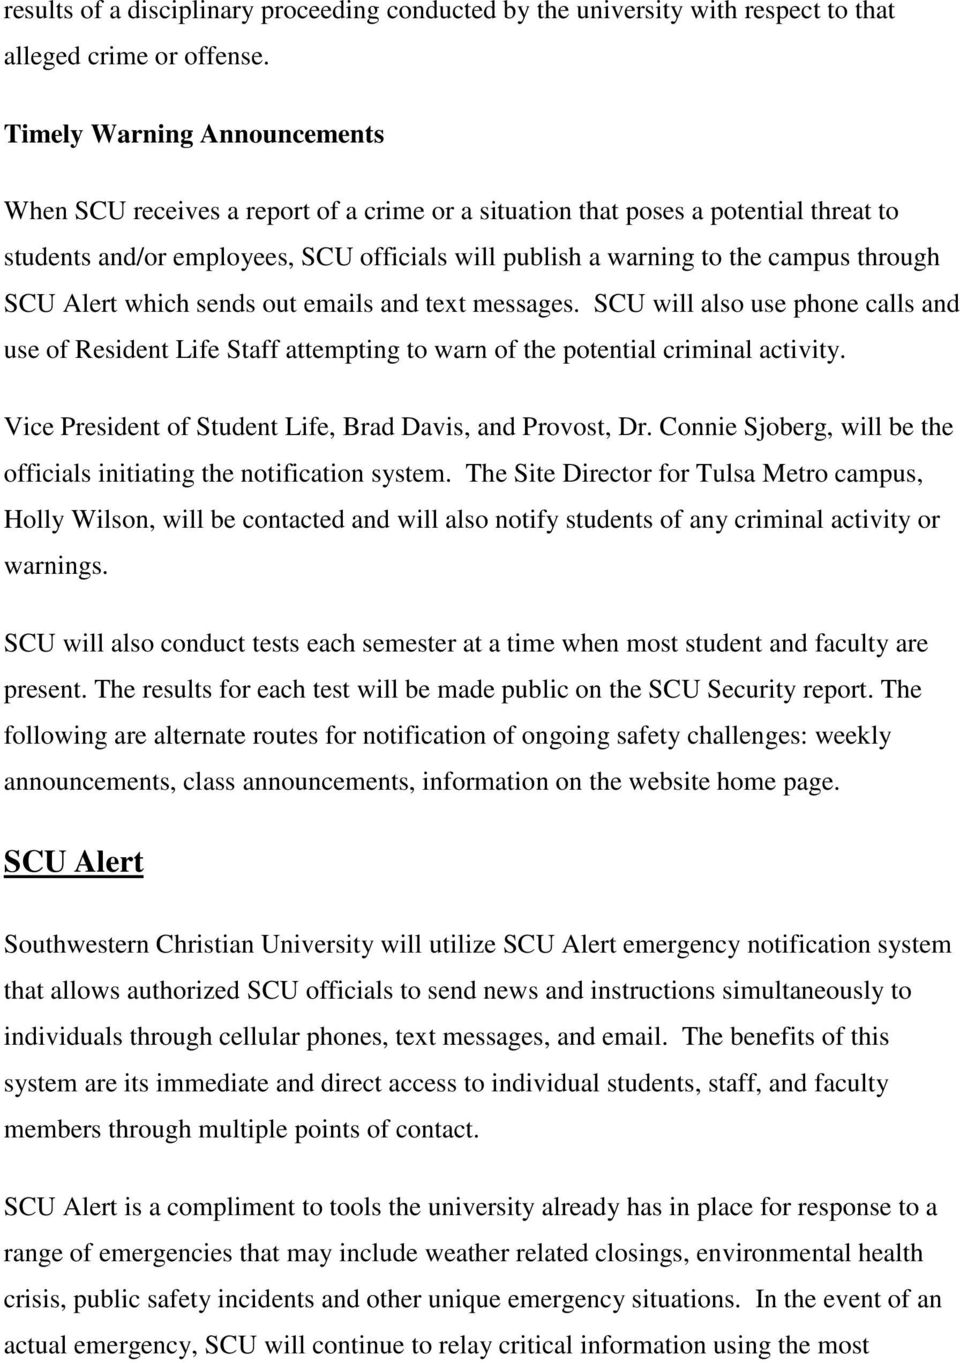 through SCU Alert which sends out emails and text messages. SCU will also use phone calls and use of Resident Life Staff attempting to warn of the potential criminal activity.